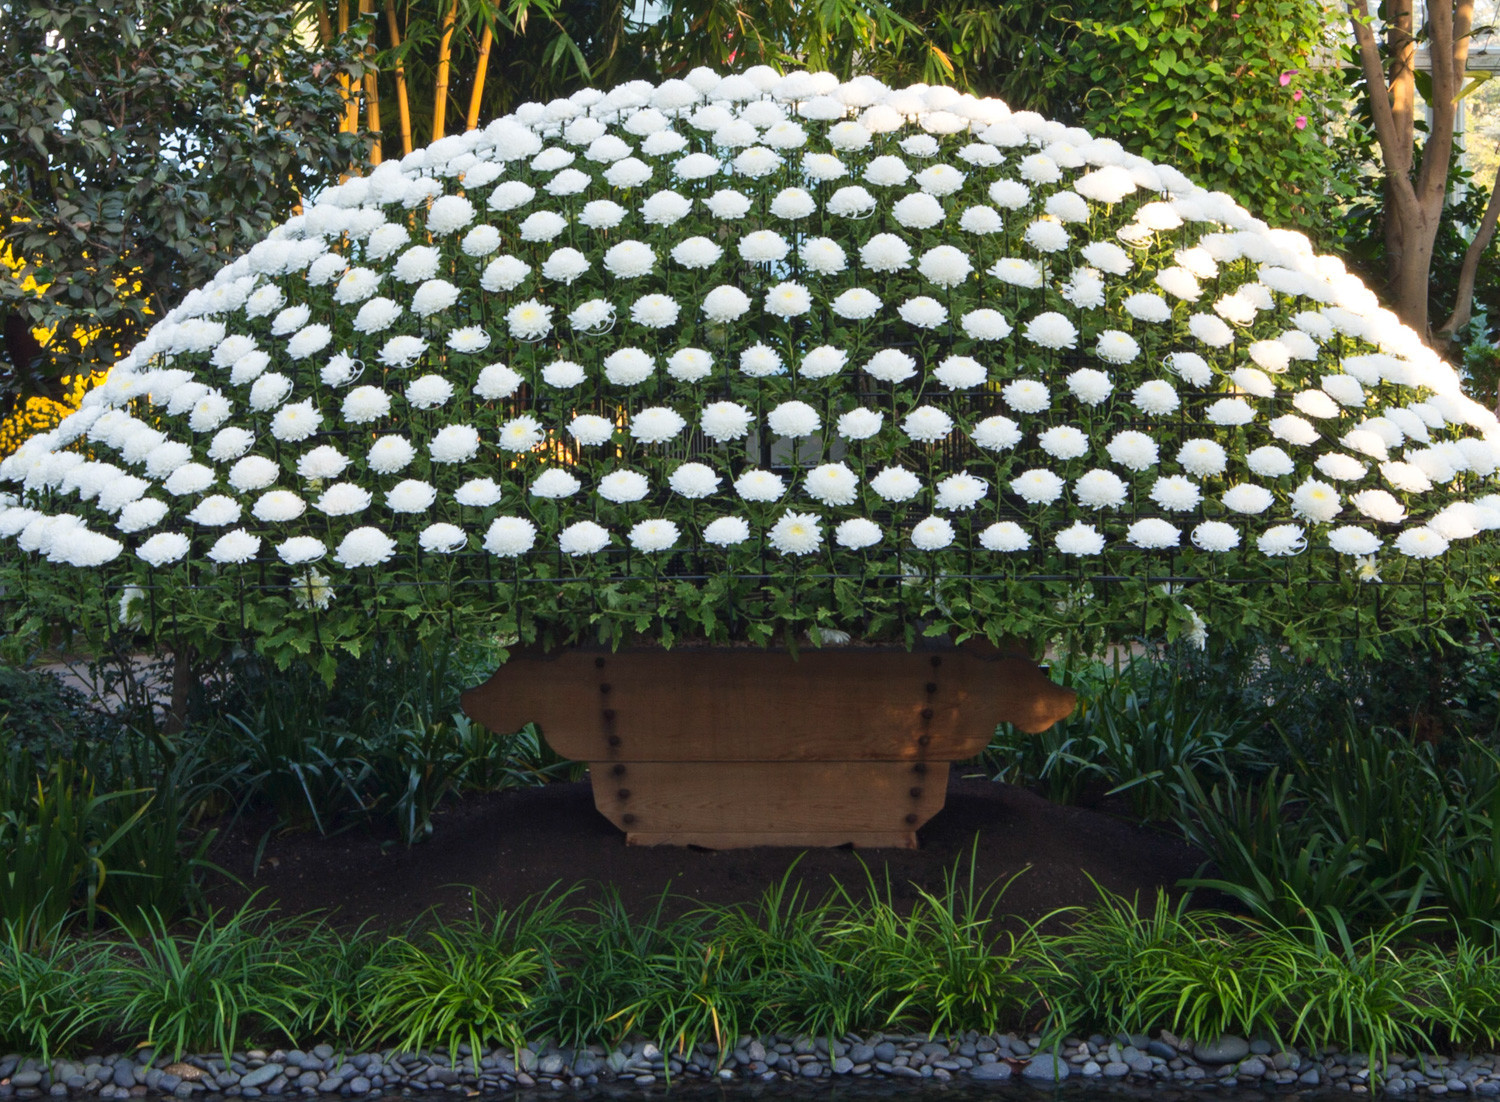 It takes a lot of patience and hard work to create what is known as the ozukuri, or the 'thousand-bloom' chrysanthemum.